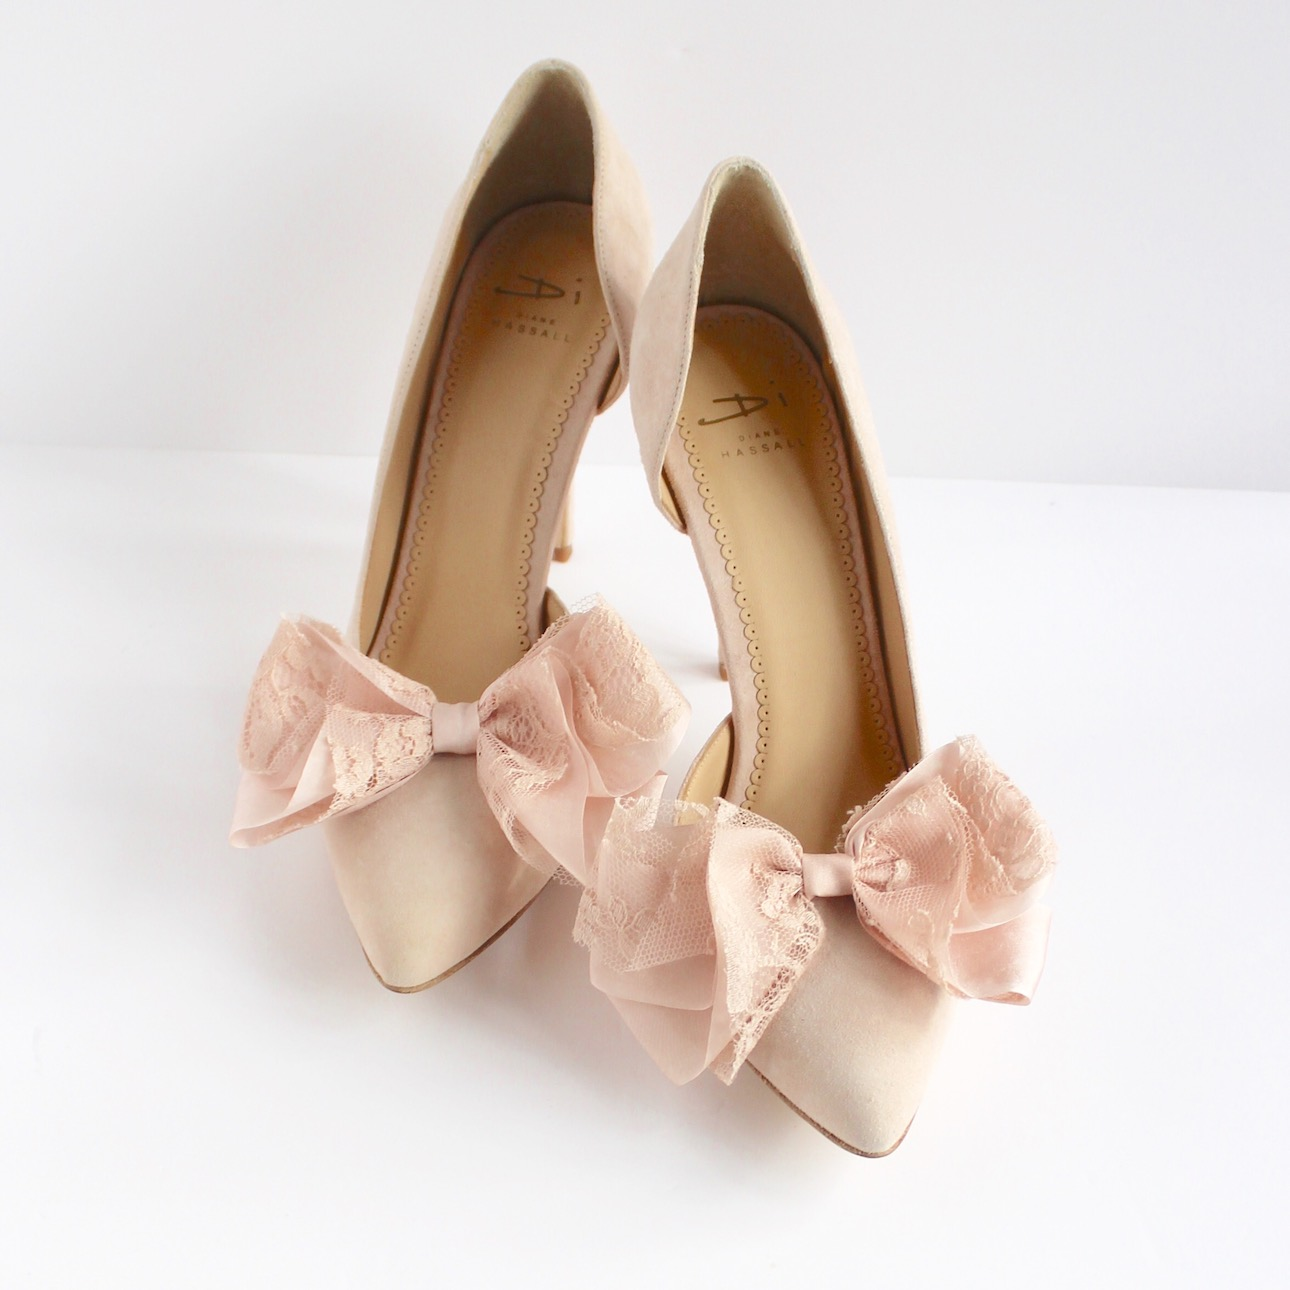 blush pink court shoe with bows